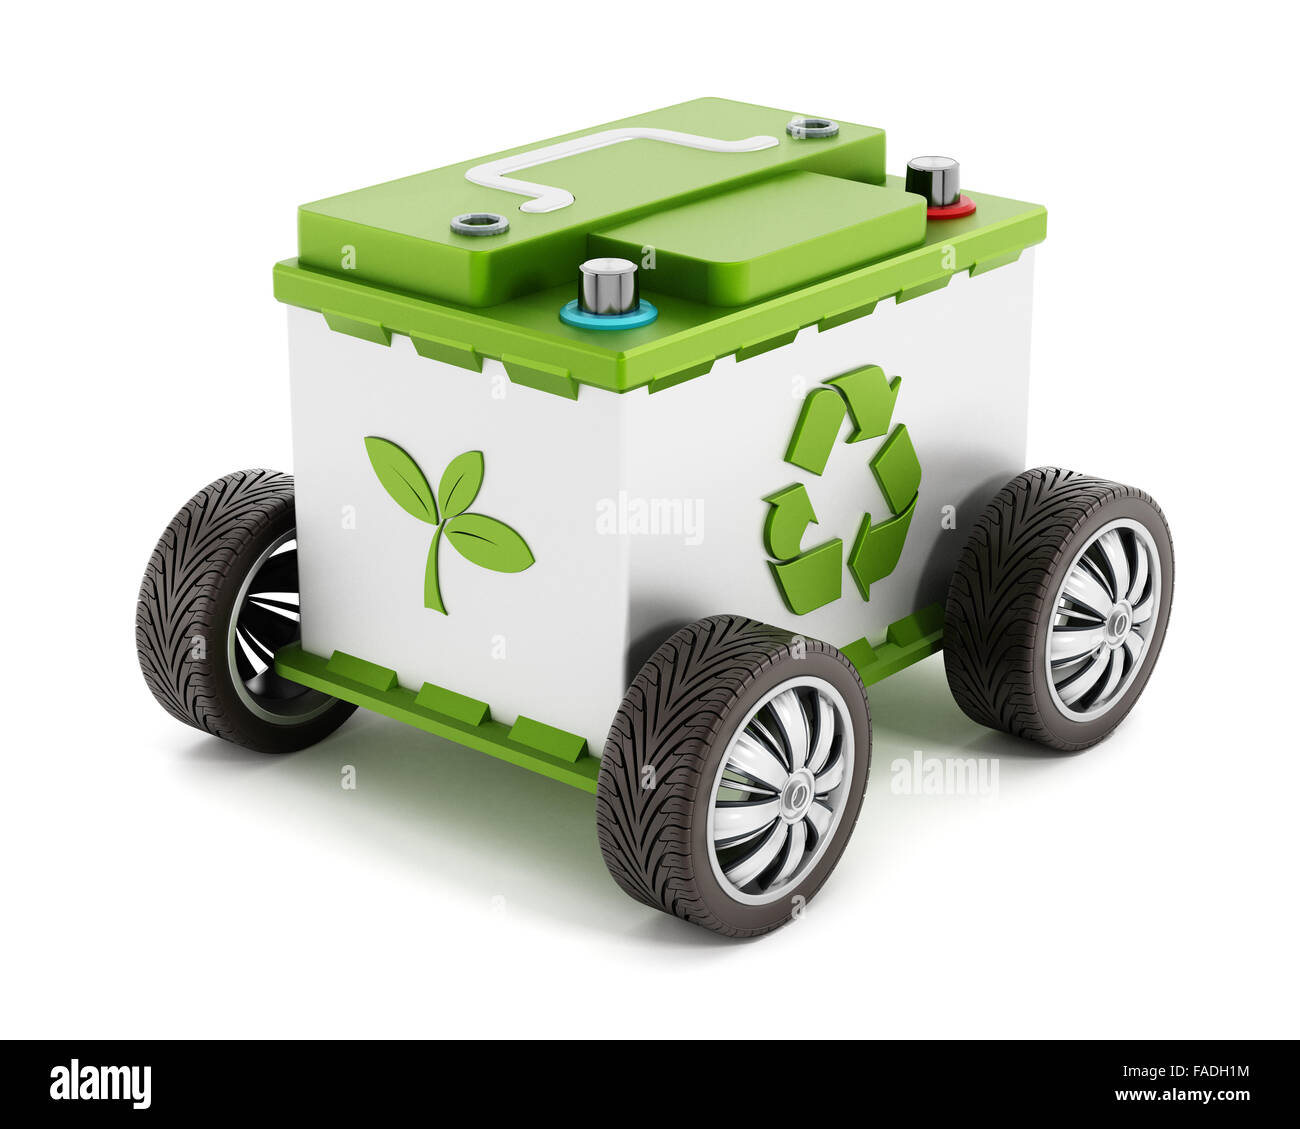 Recyclable car battery with tyres isolated on white background - Stock Image